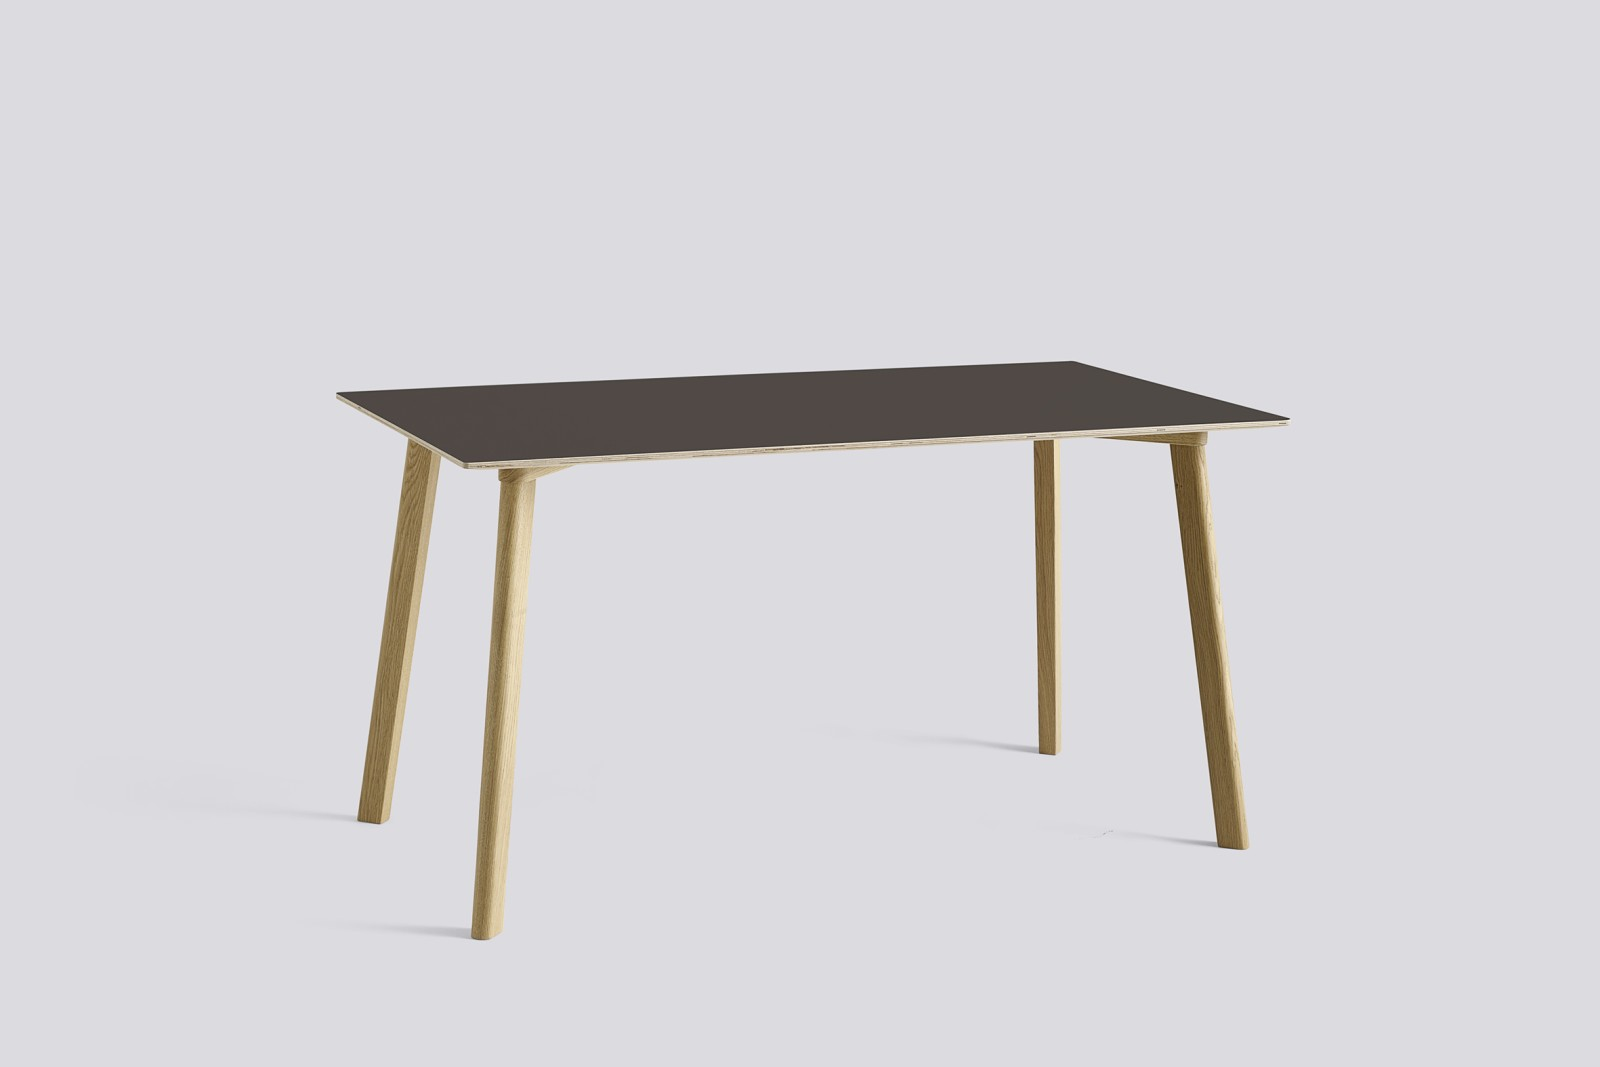 Copenhague Deux (CPH210) Rectangular Dining Table Beige Grey Laminate Top, Untreated Solid Beech Bas